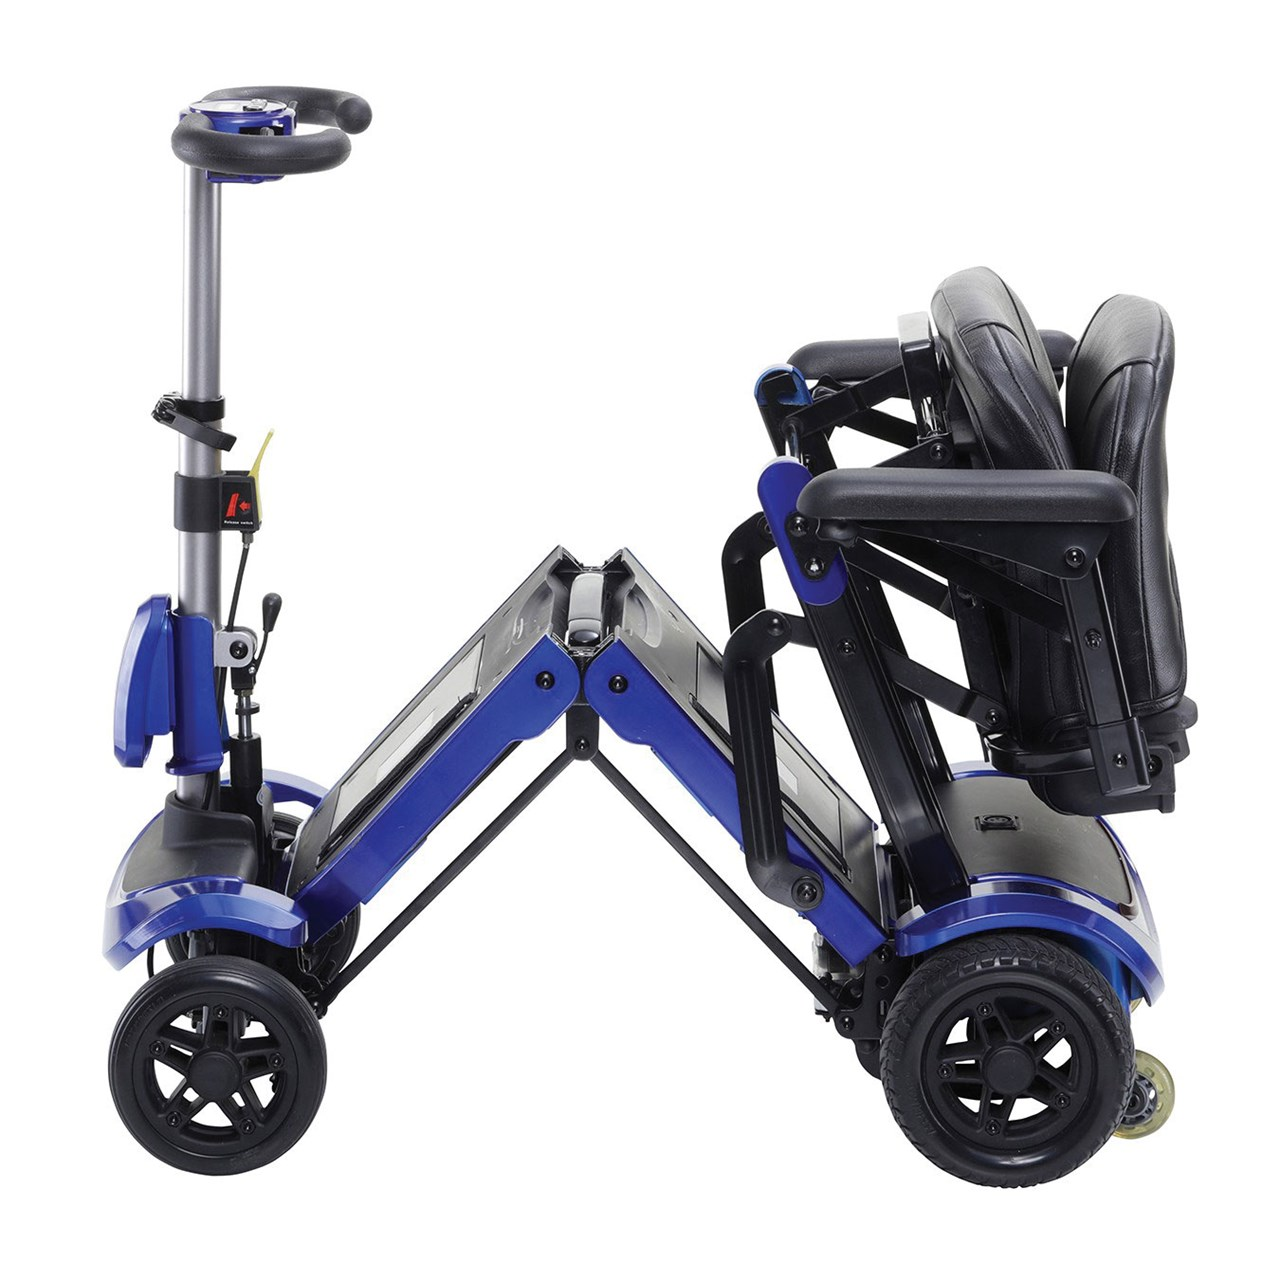 Maxiaids Zoome Flex Folding Airline Friendly Travel Scooter